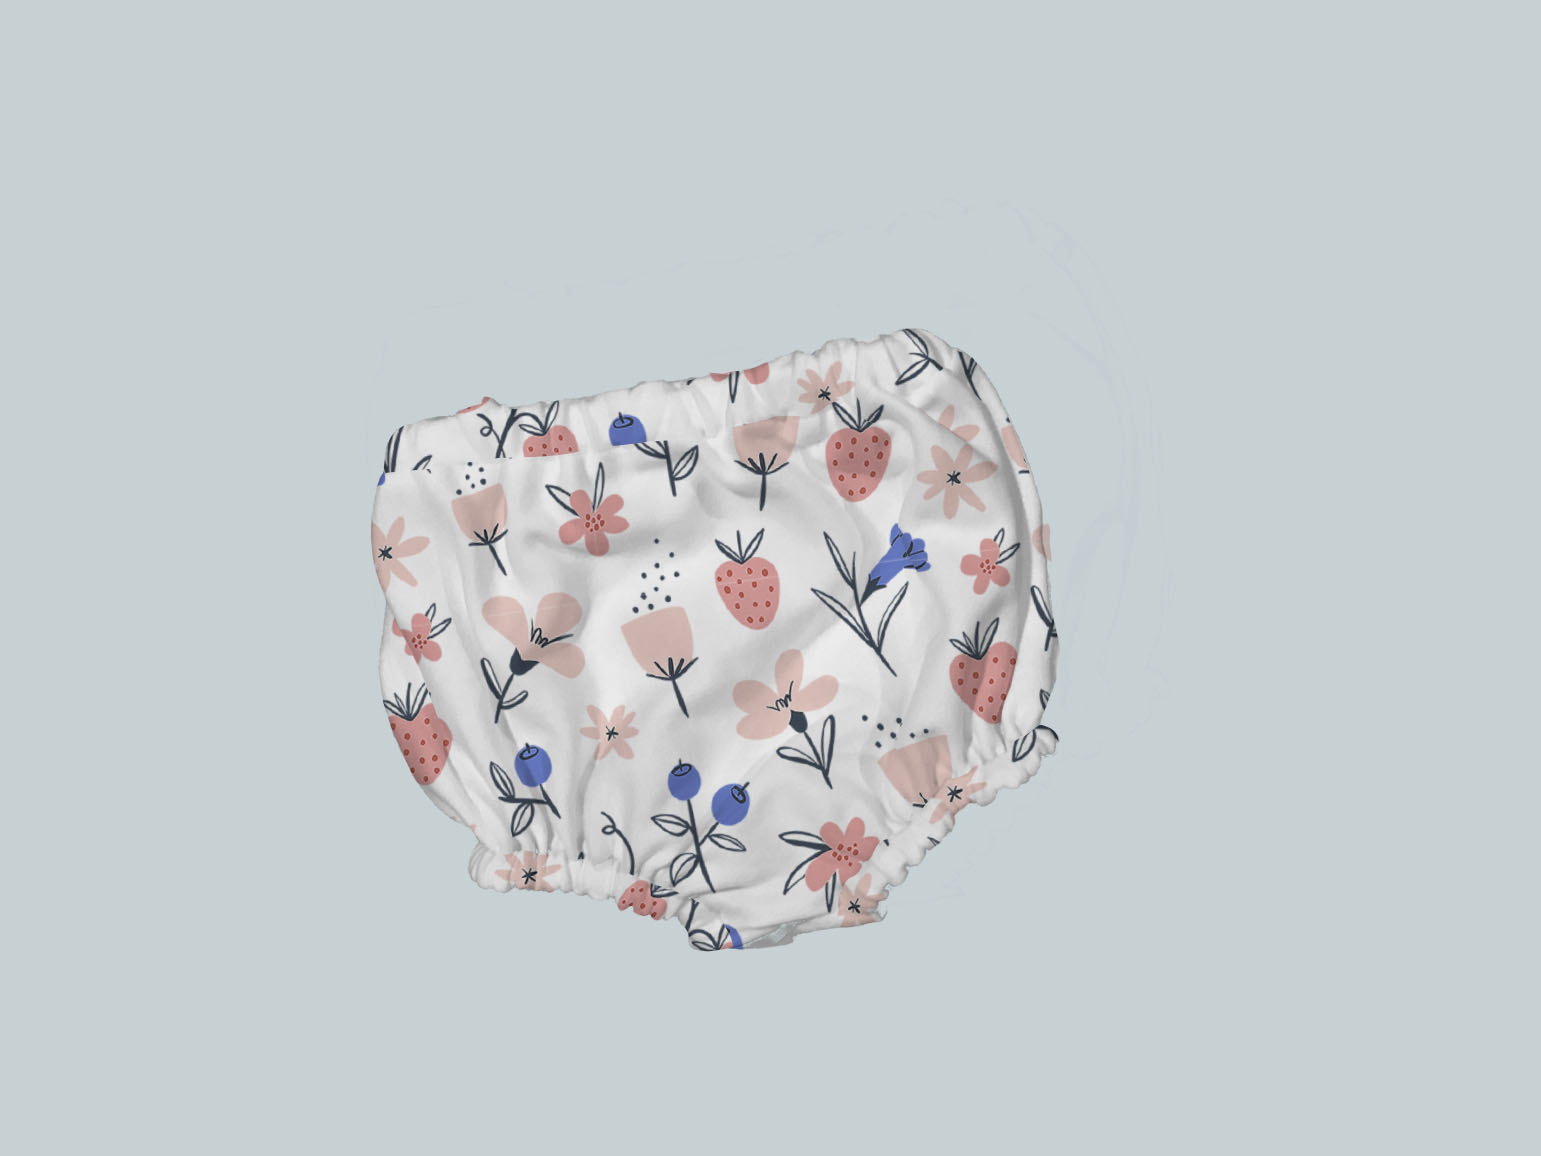 Bummies/Diaper Cover - Abstract Flowers & Berries